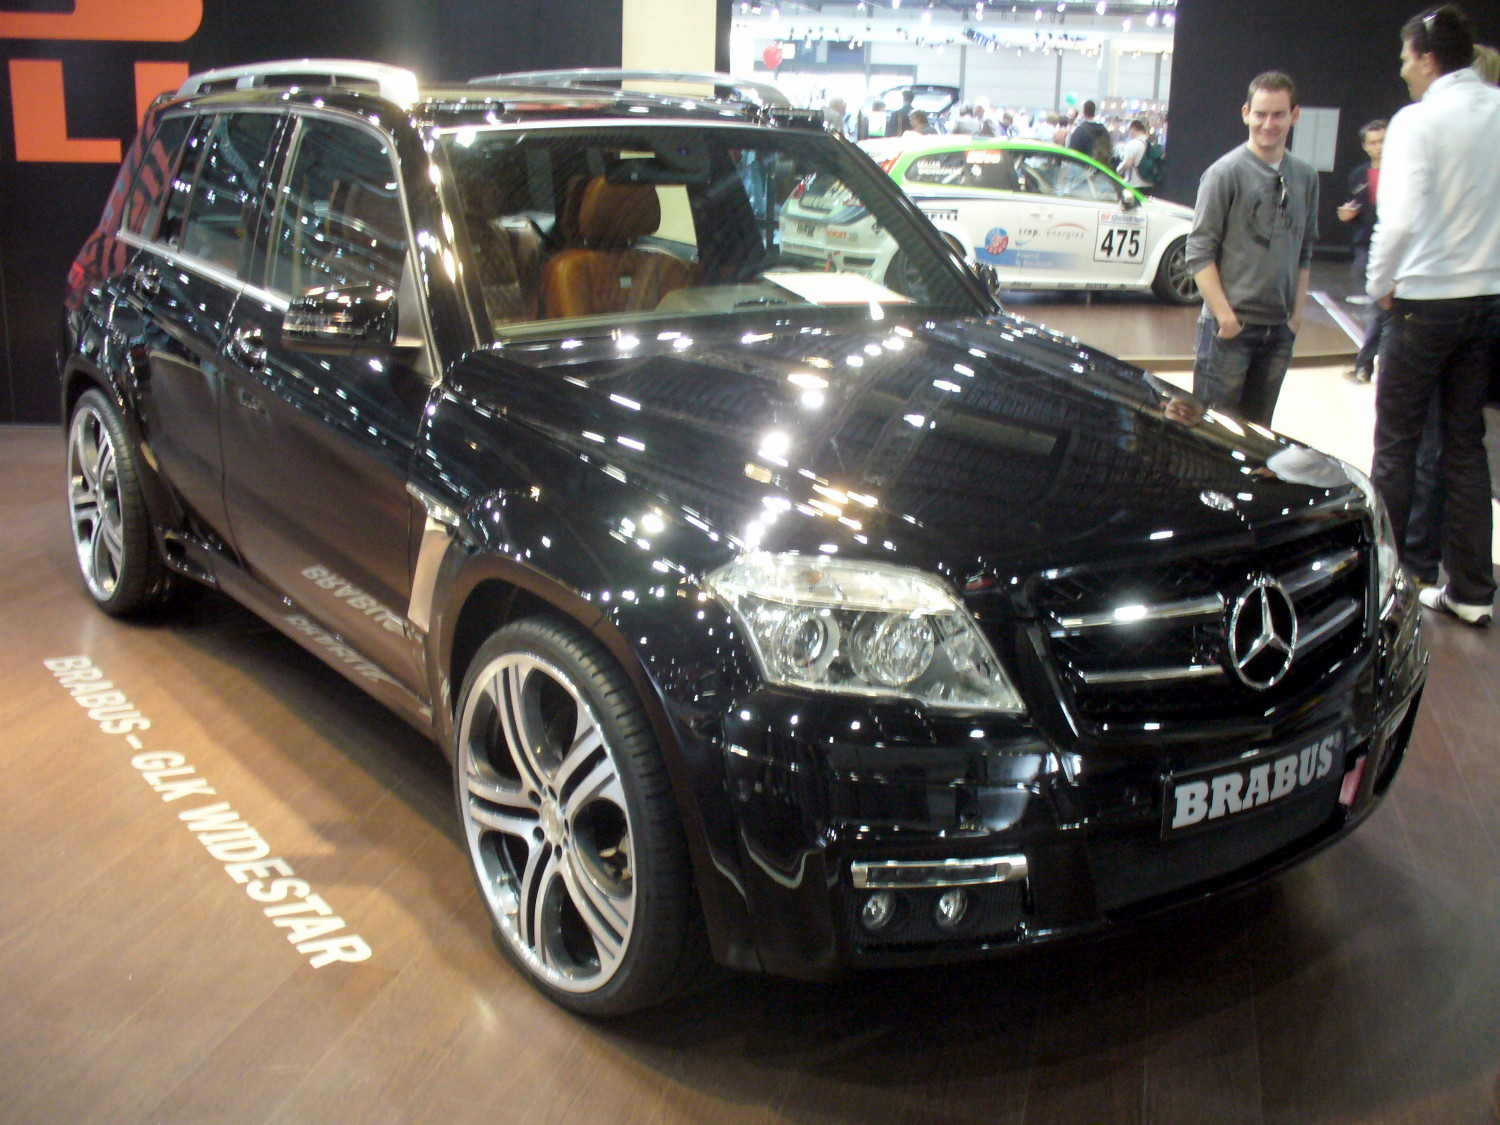 File Brabus Glk Widestar Jpg Wikimedia Commons